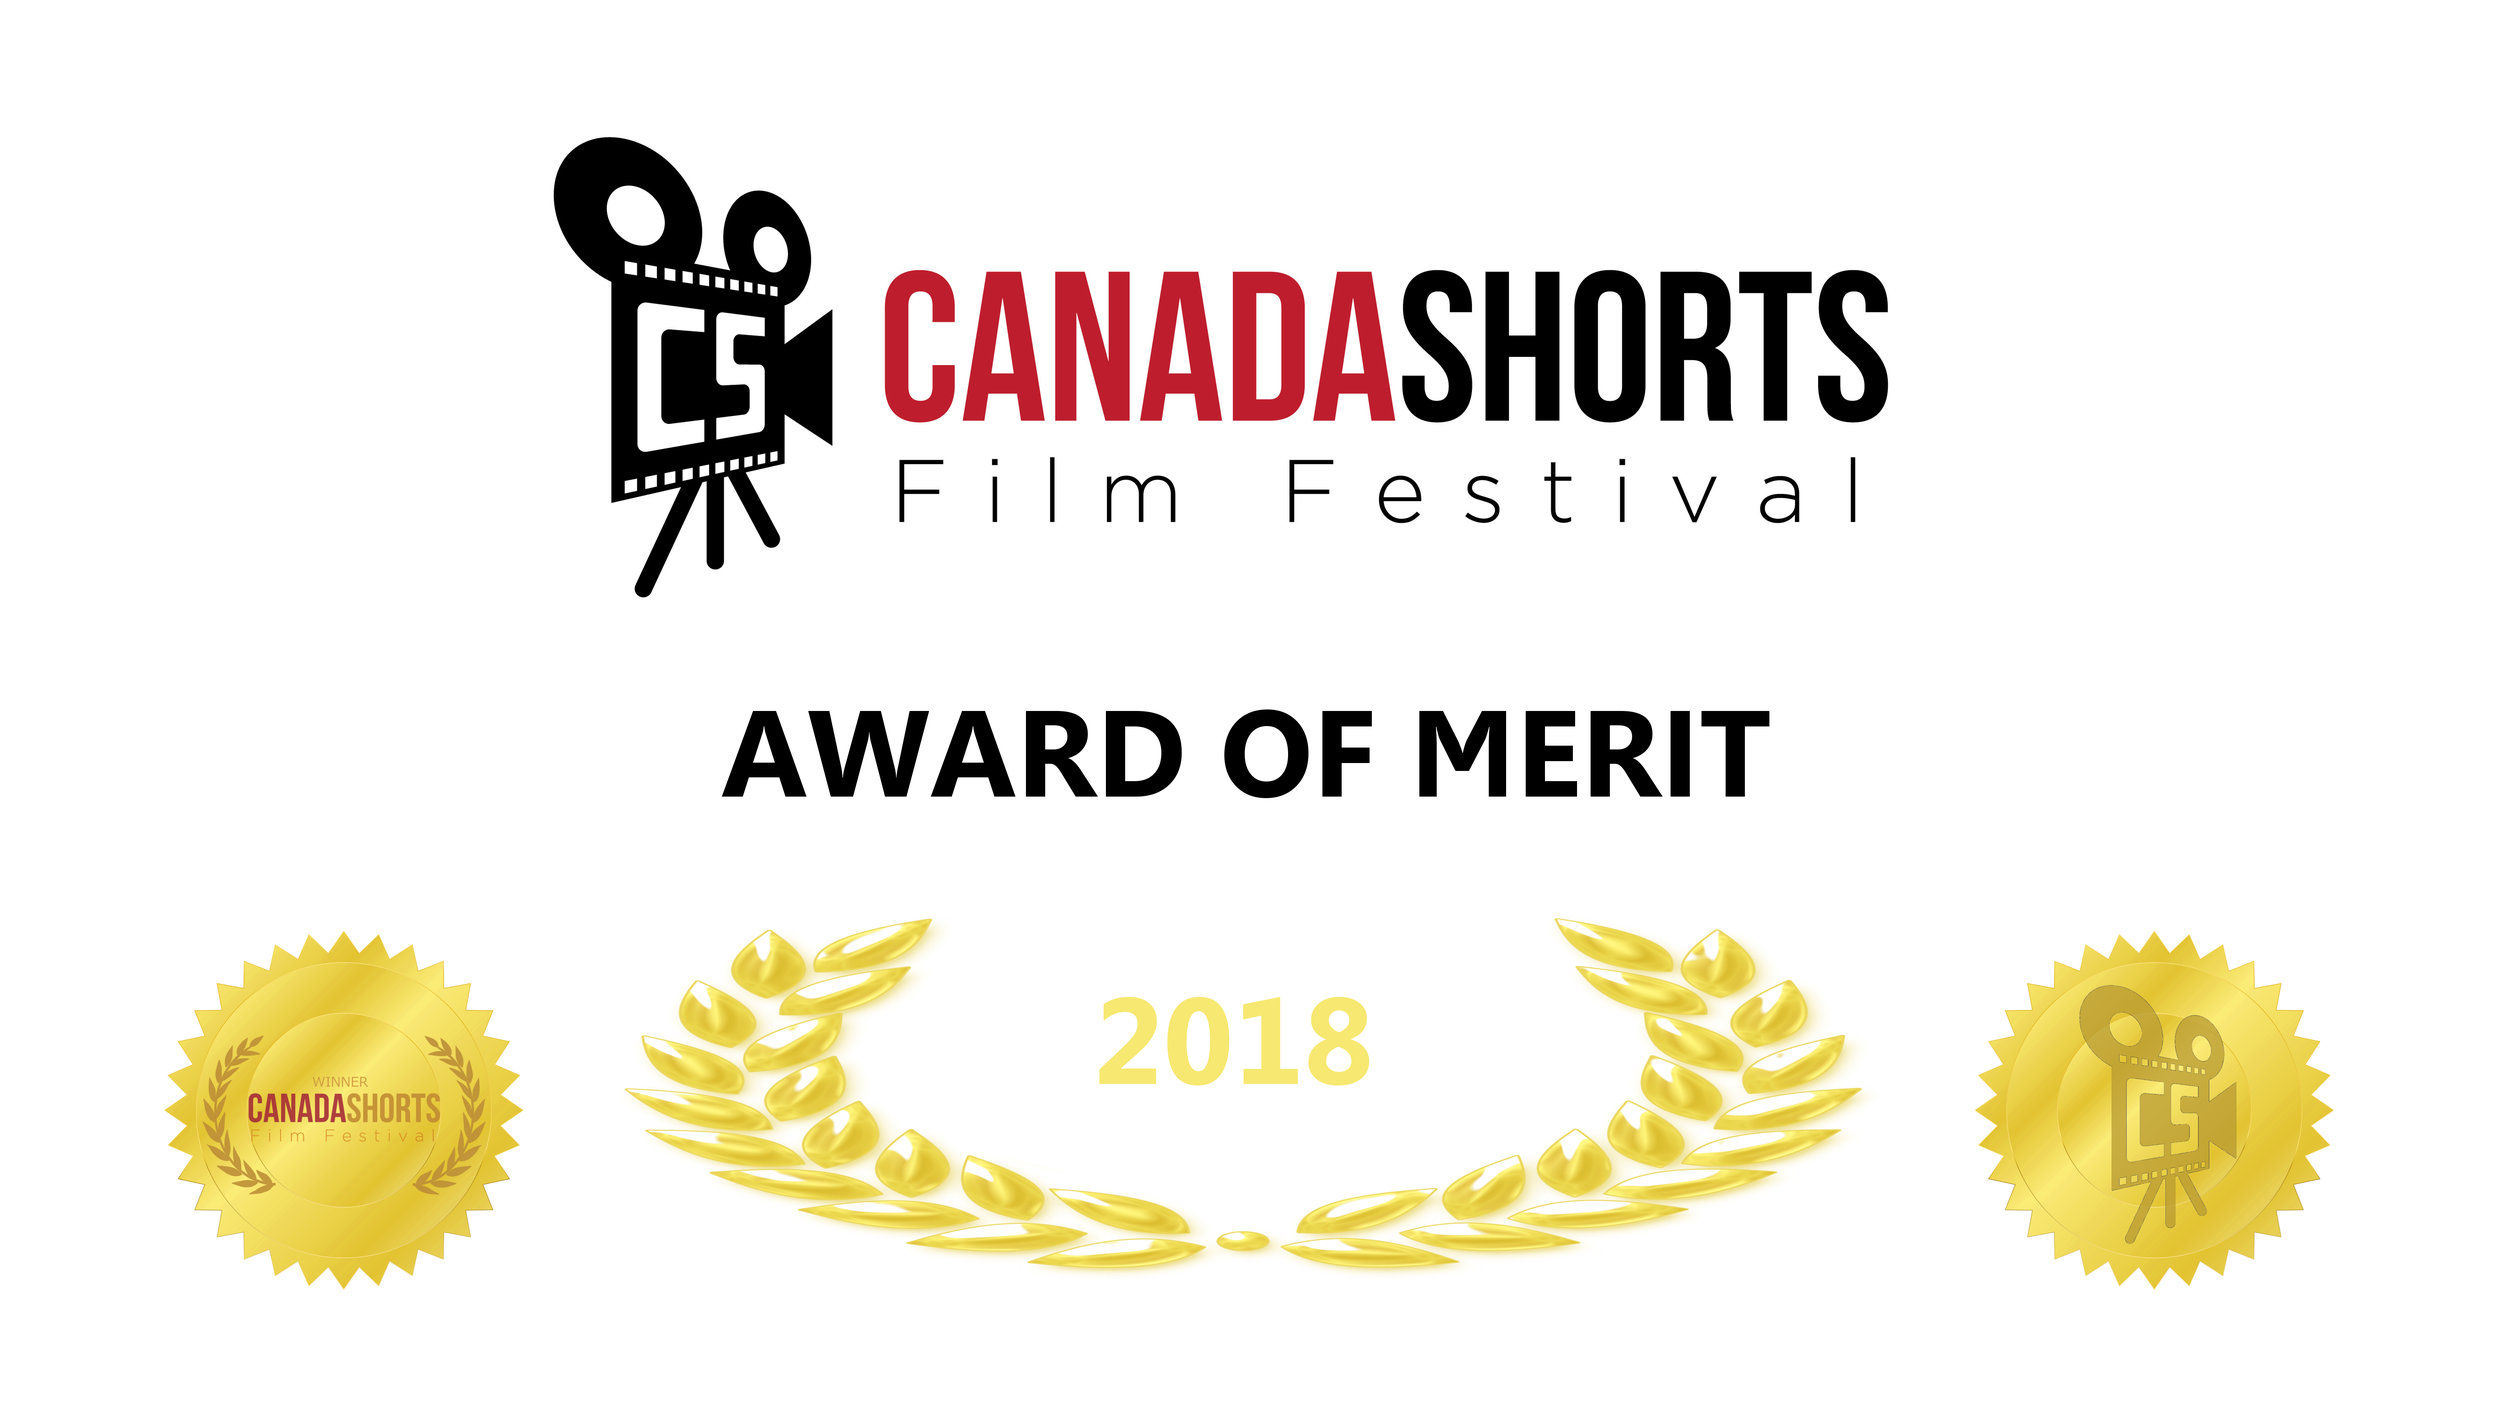 Canada Shorts 2018 award of merit certificate copy.jpg